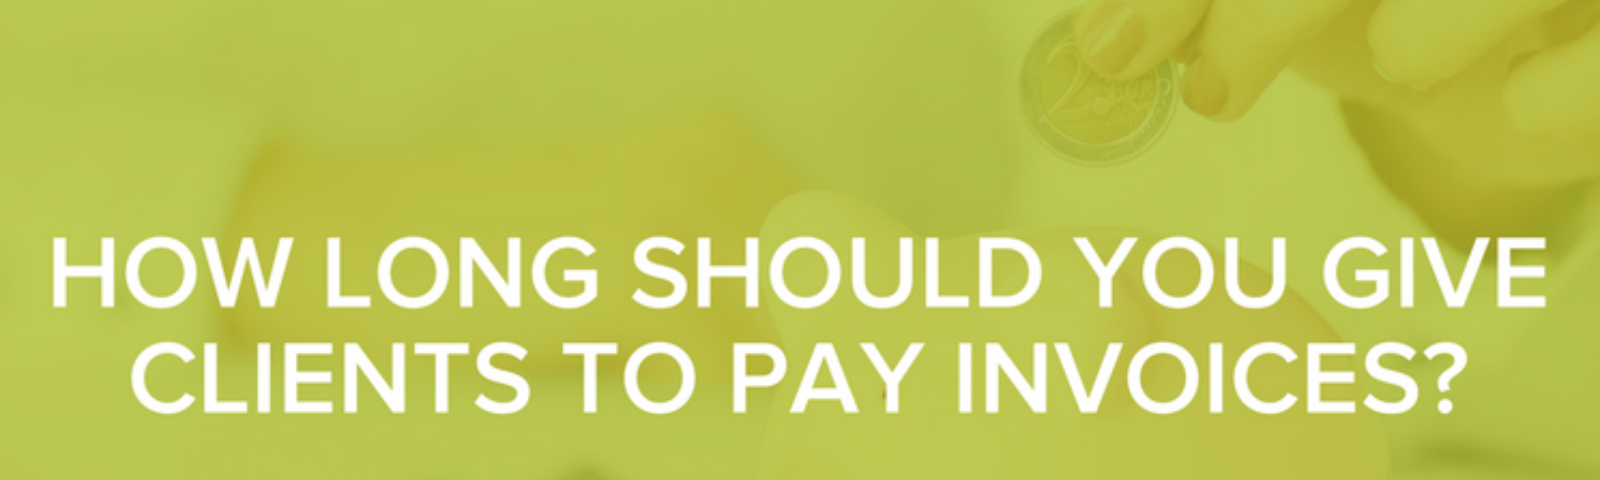 How Long Should You Give Clients To Pay Invoices?